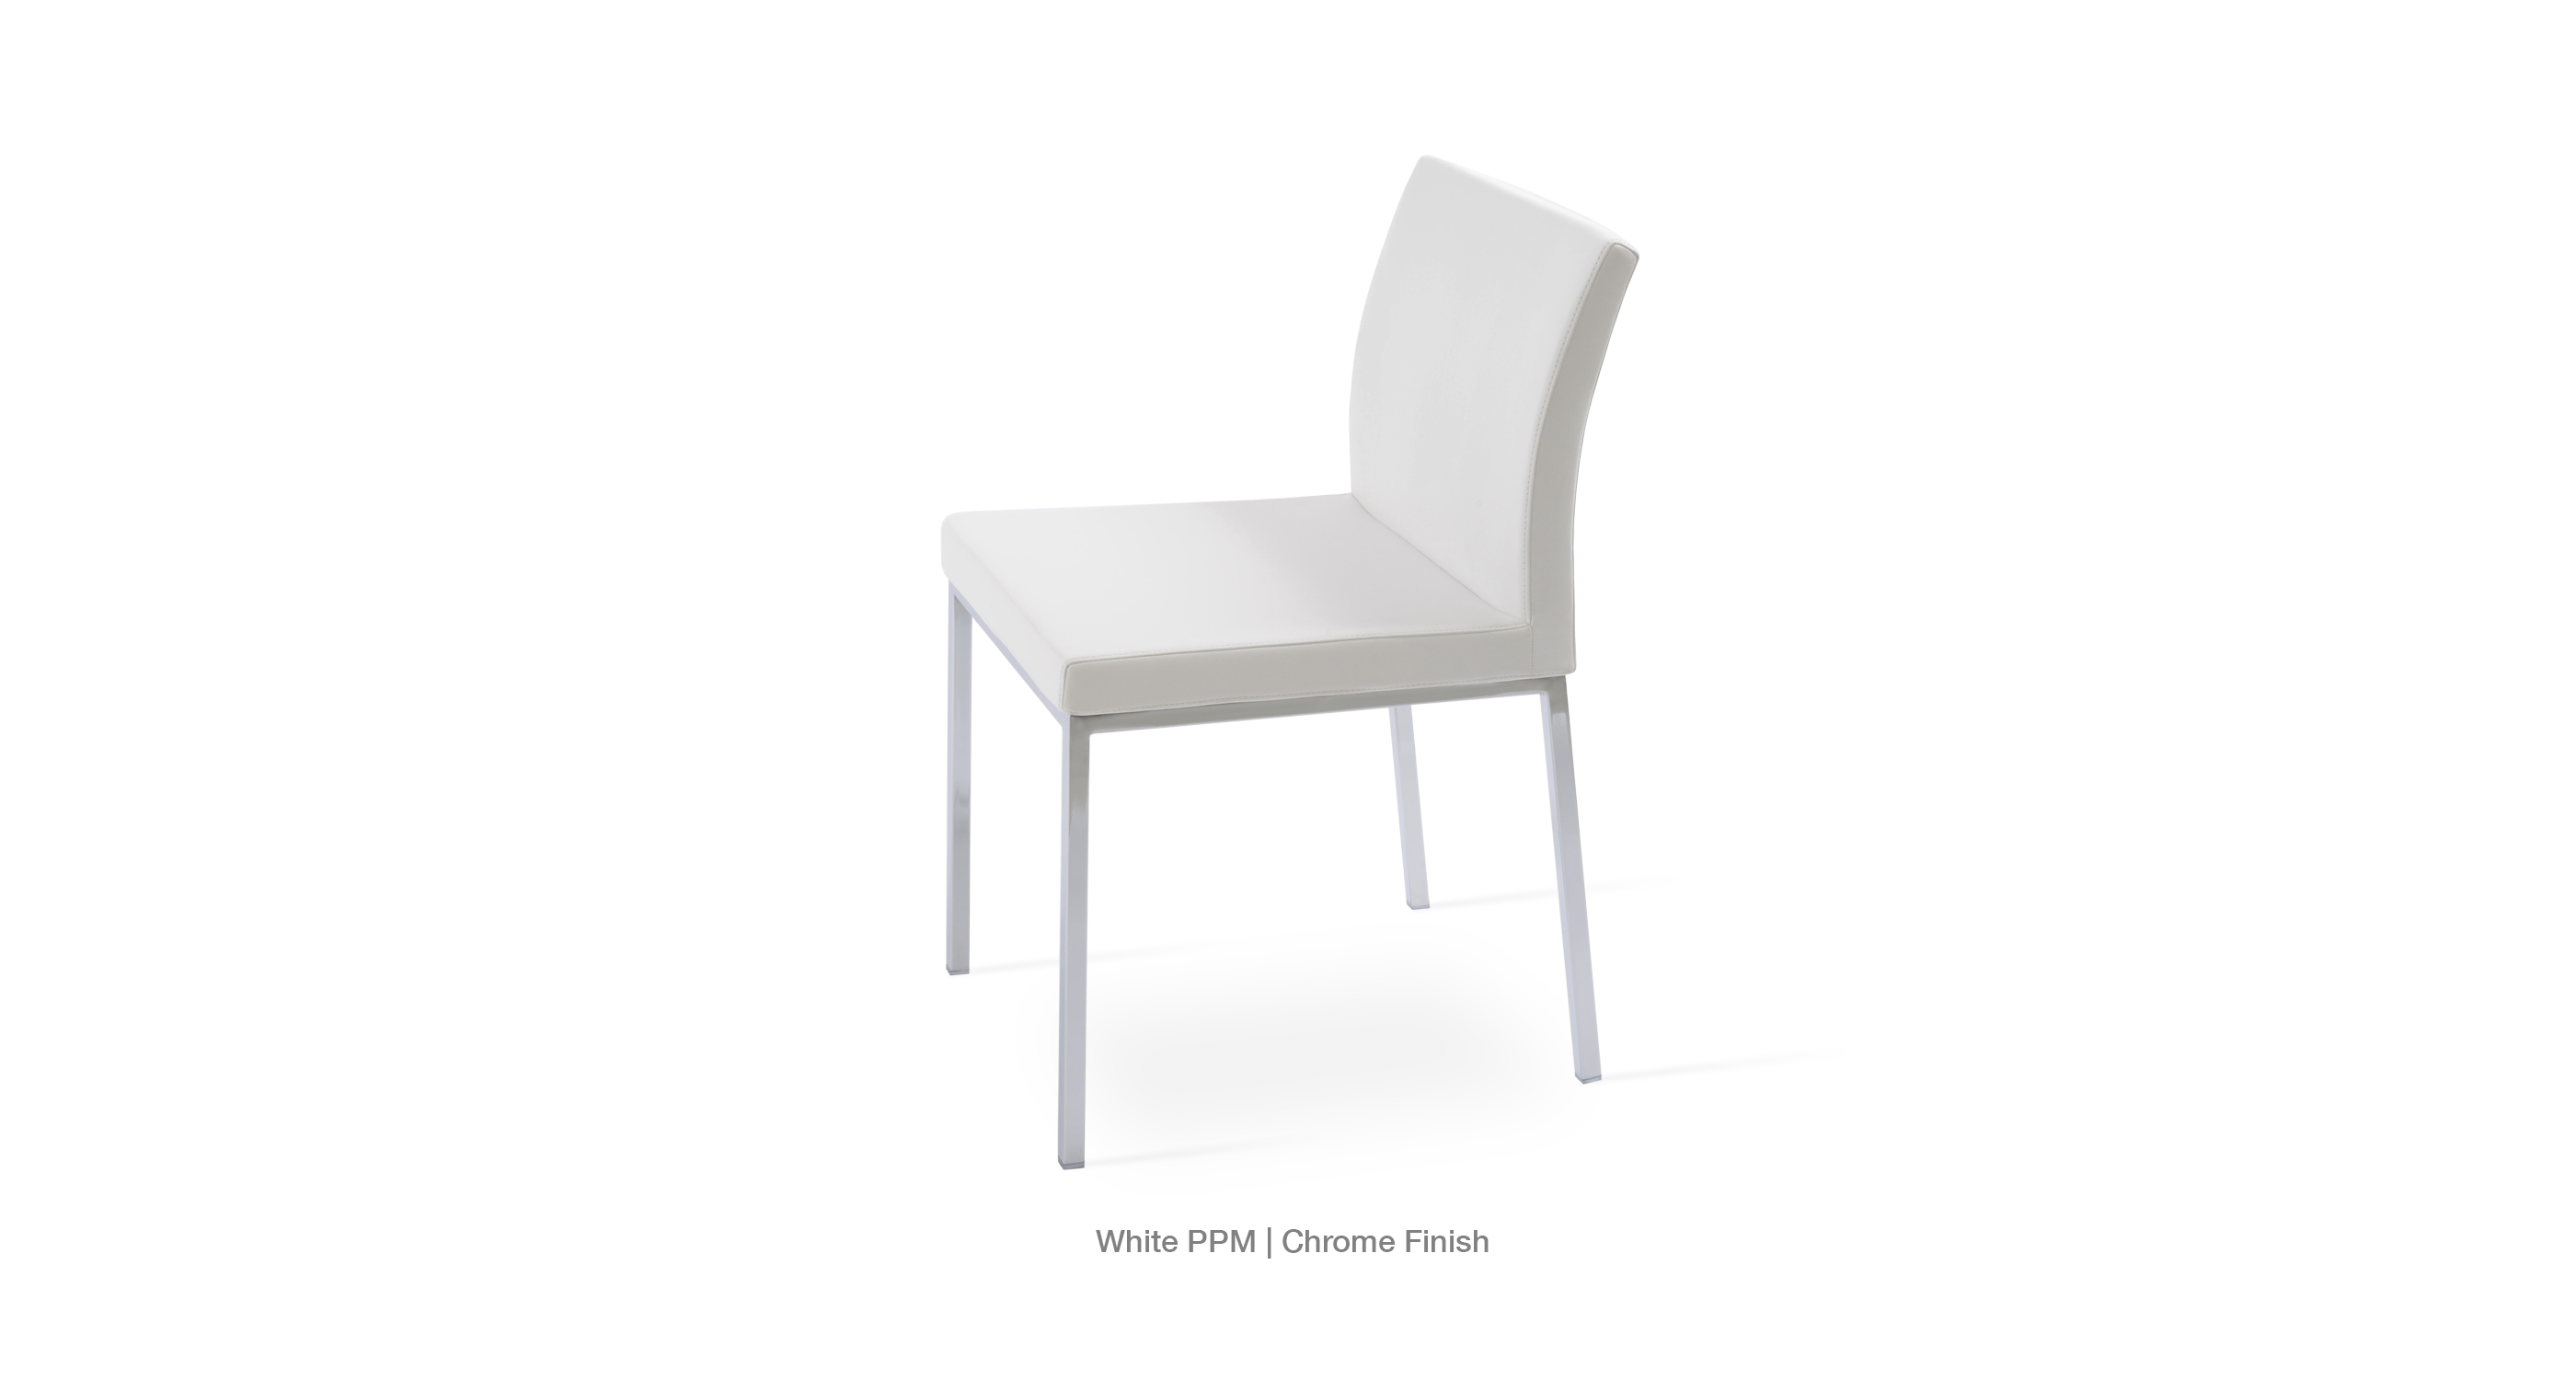 white metal chairs folding chair brands modern dining aria by sohoconcept ppm